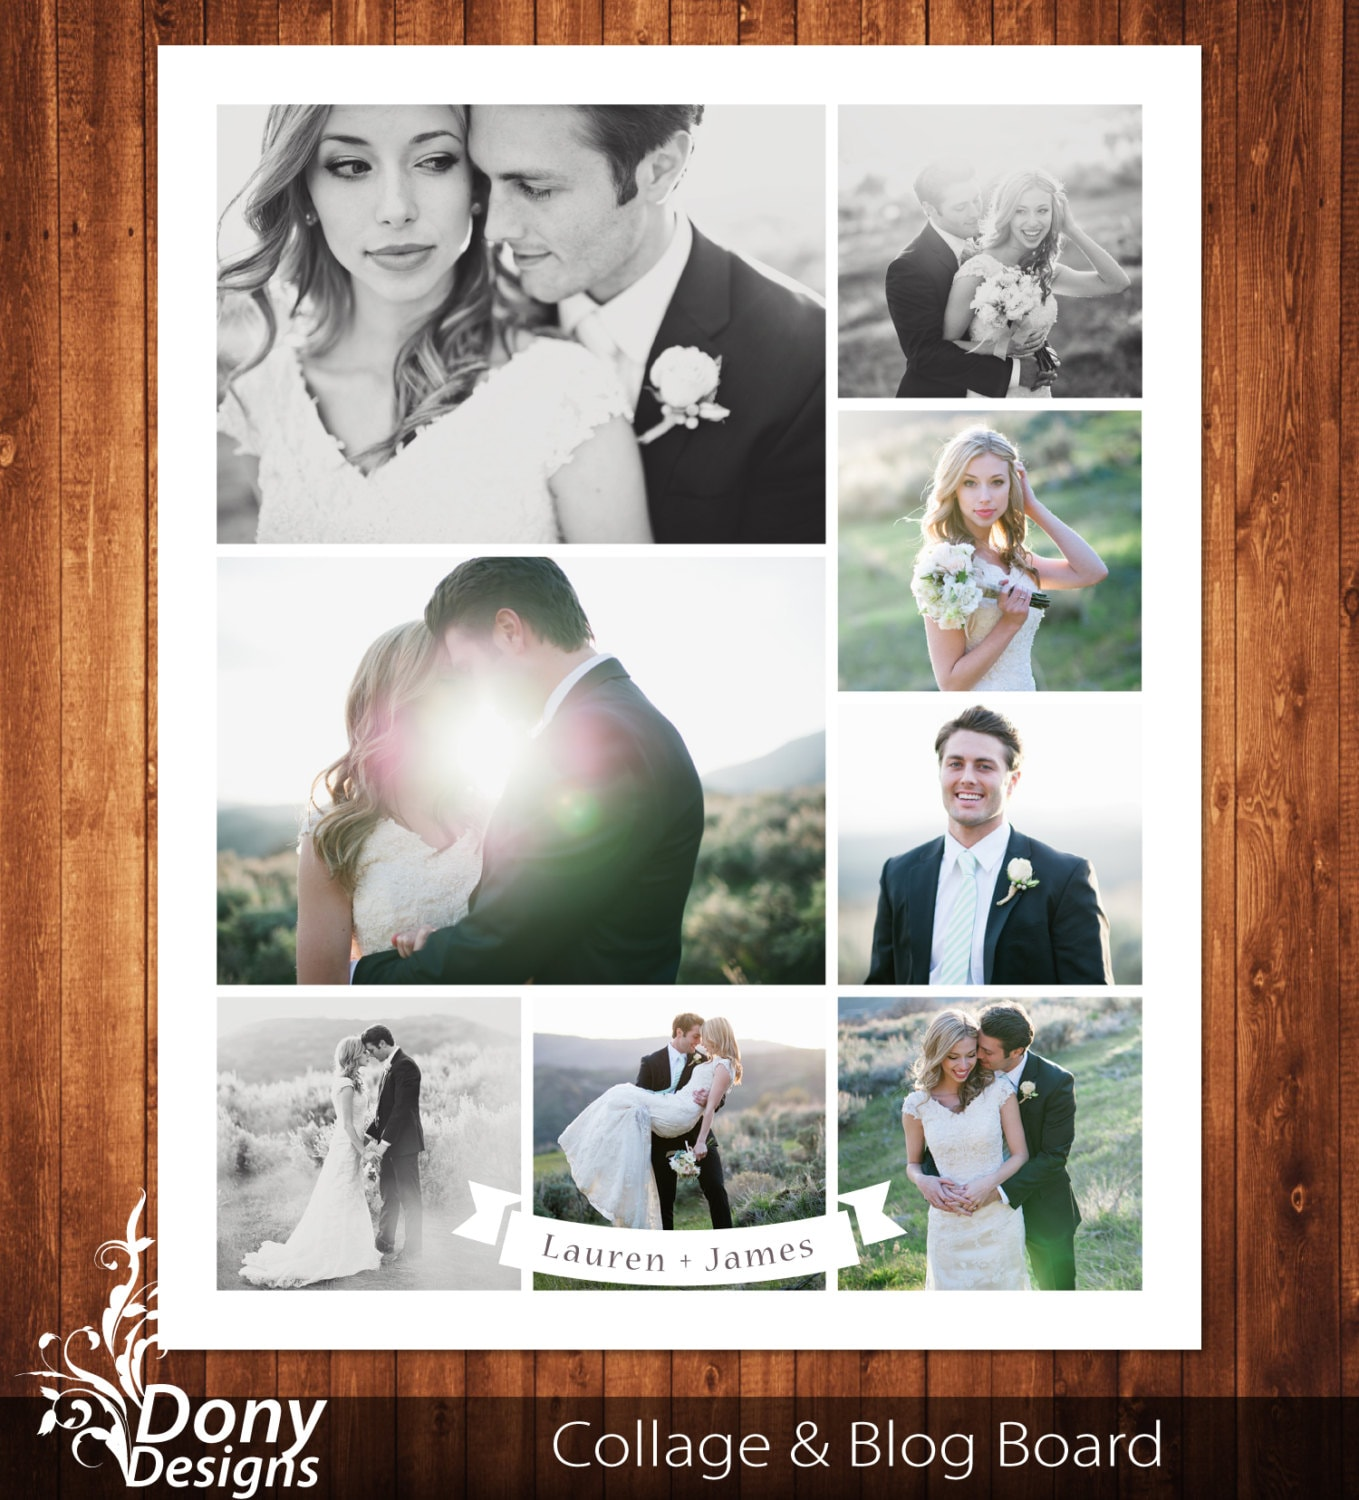 Wedding collages templates 3025279 - exefore.info